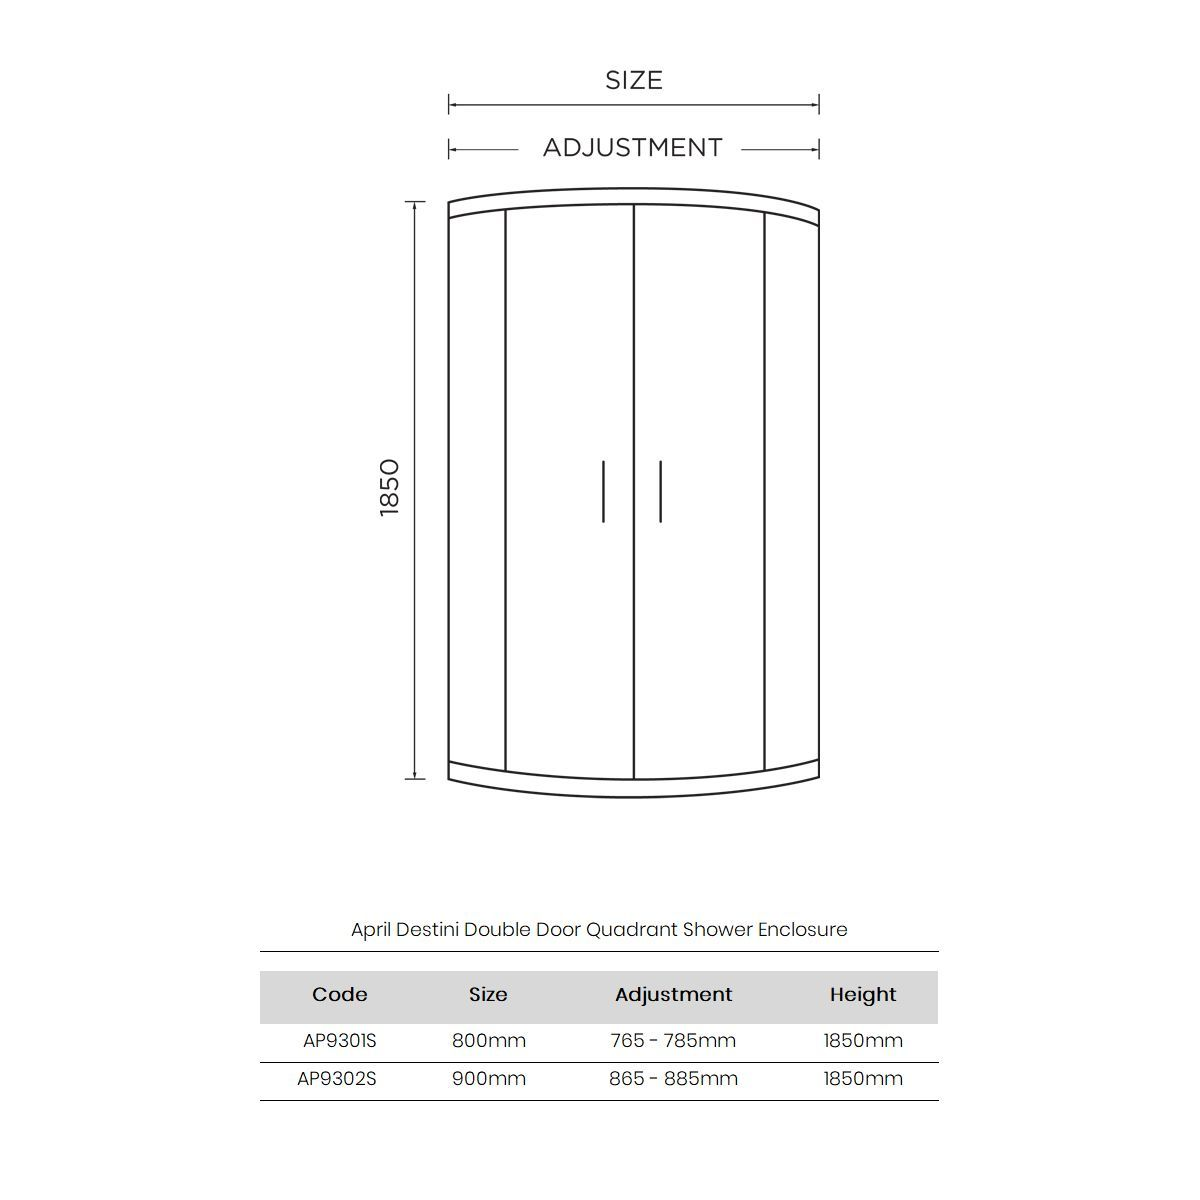 April Destini Quadrant Shower Enclosure Dimensions